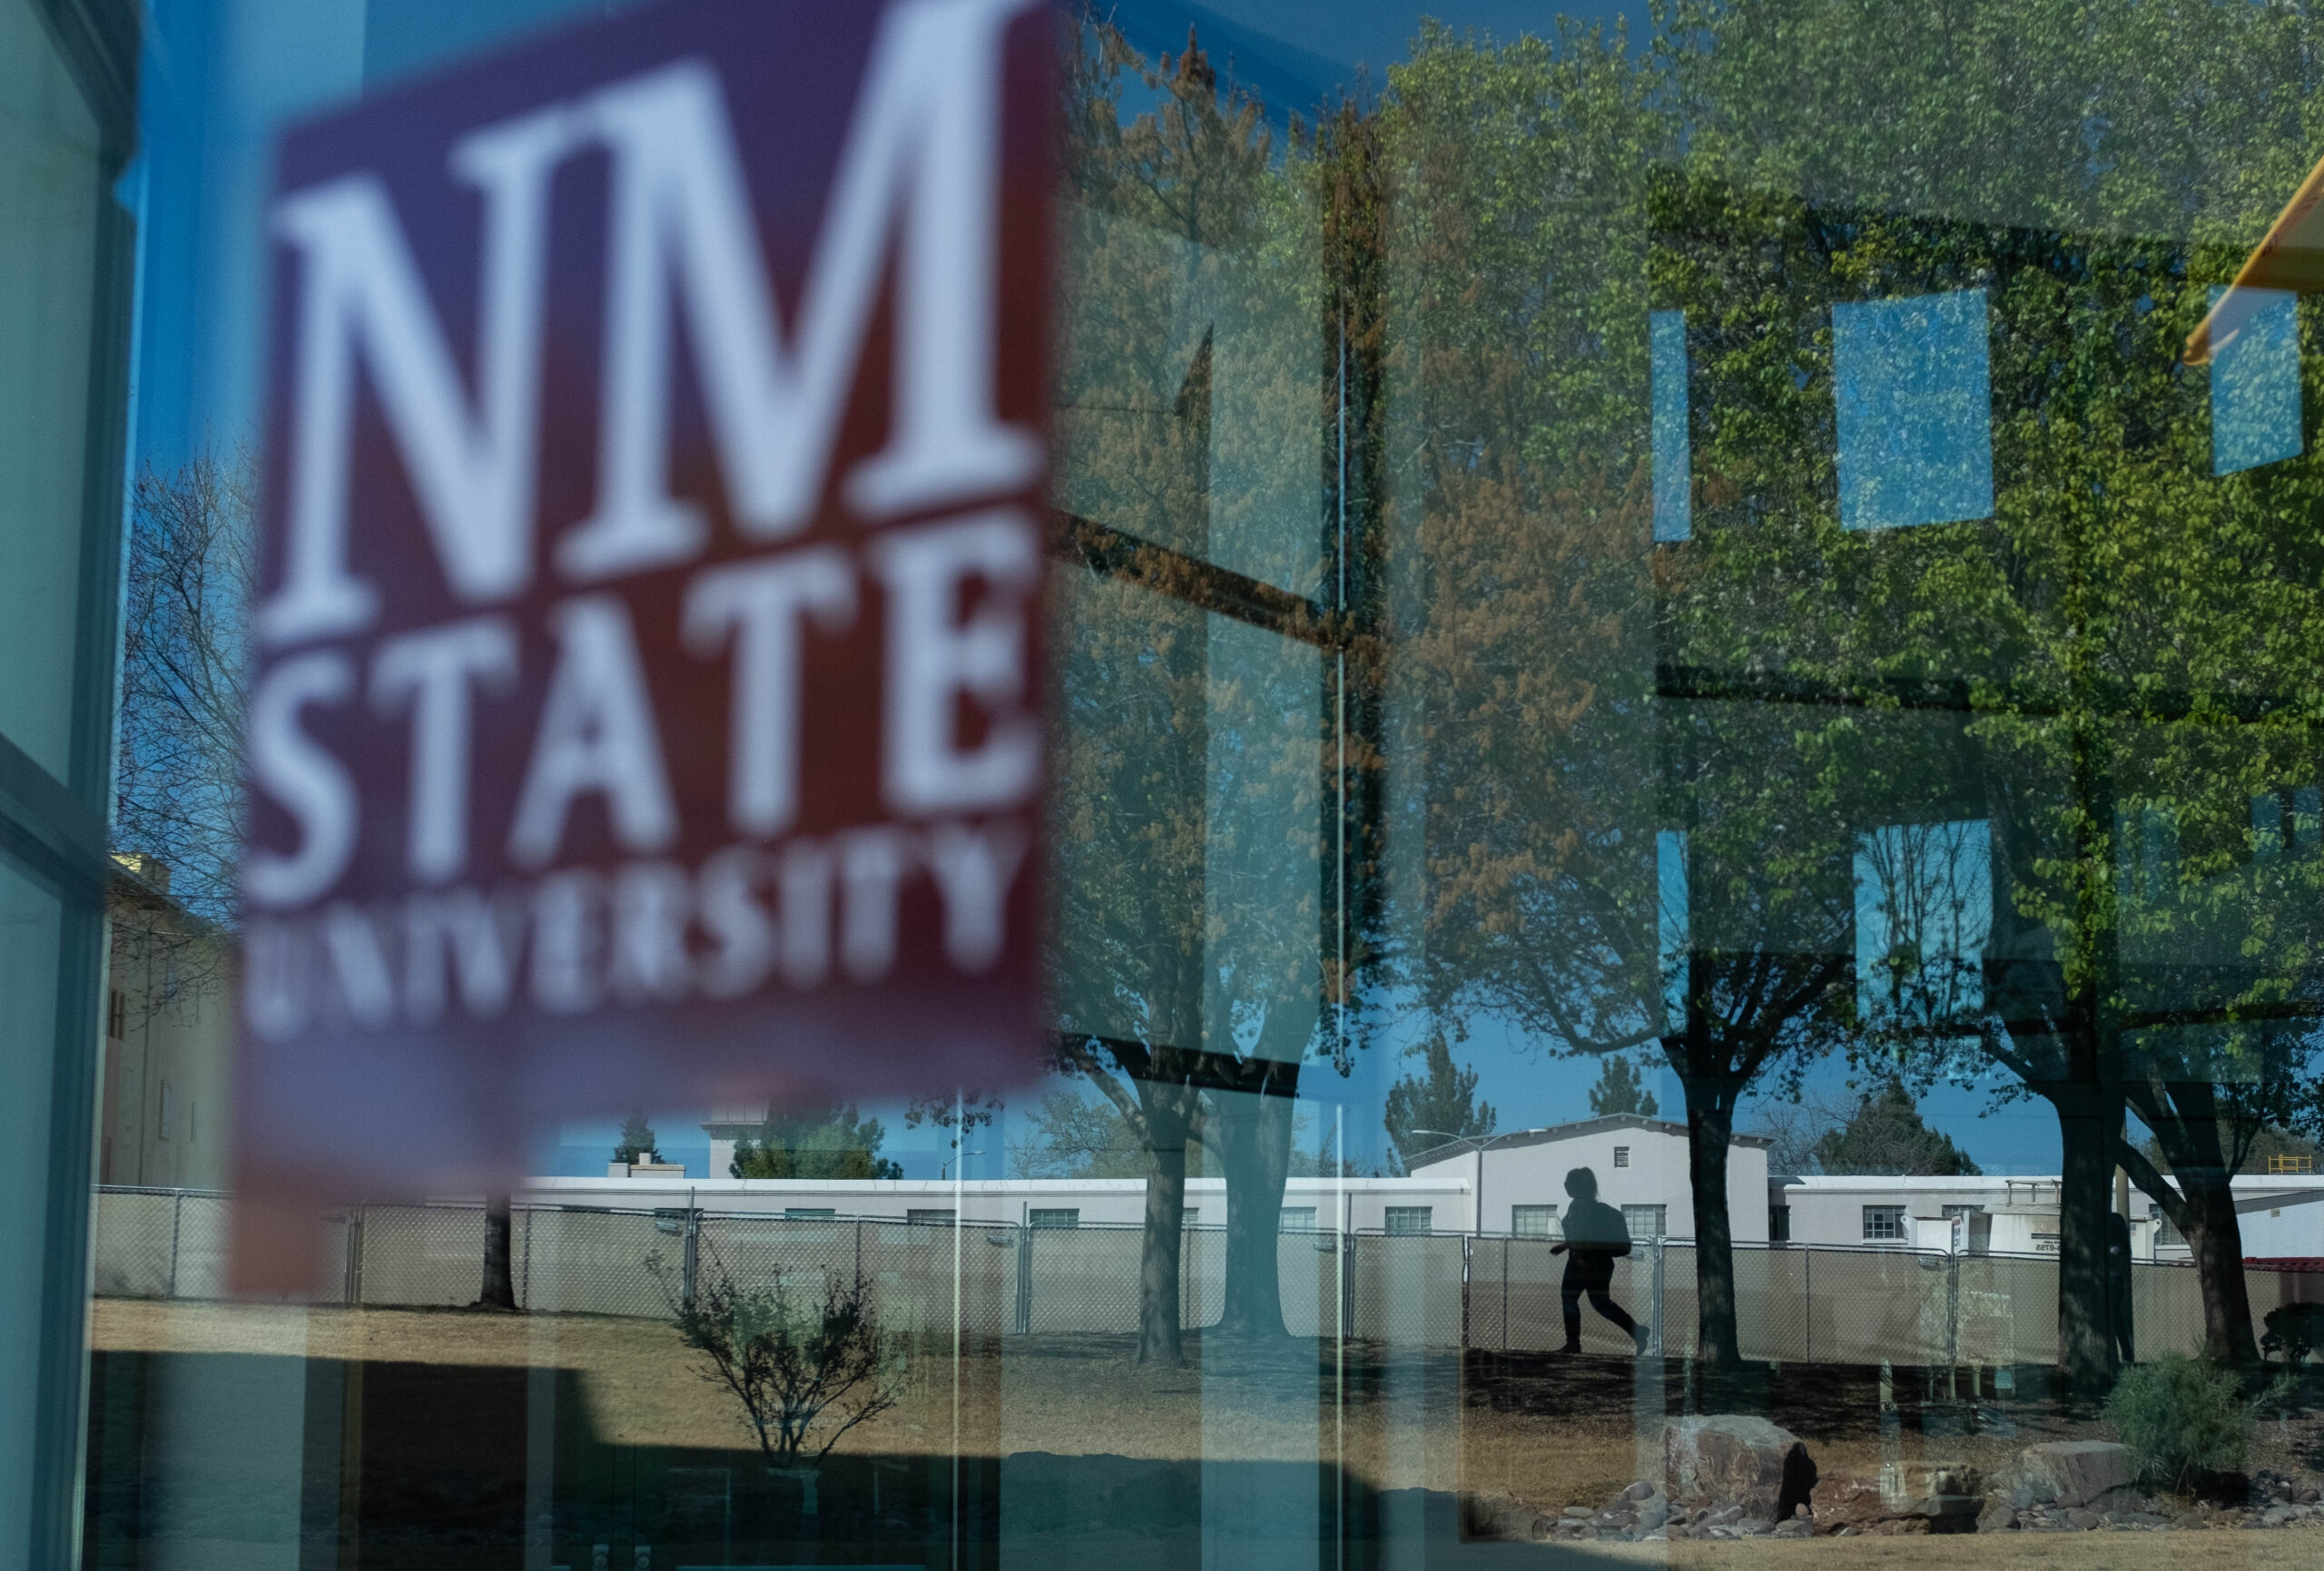 The 2021 Undergraduate Research and Creative Arts Symposium, hosted by the William Conroy Honors College at New Mexico State University, celebrates undergraduate student research and creativity. | Photo courtesy NMSU